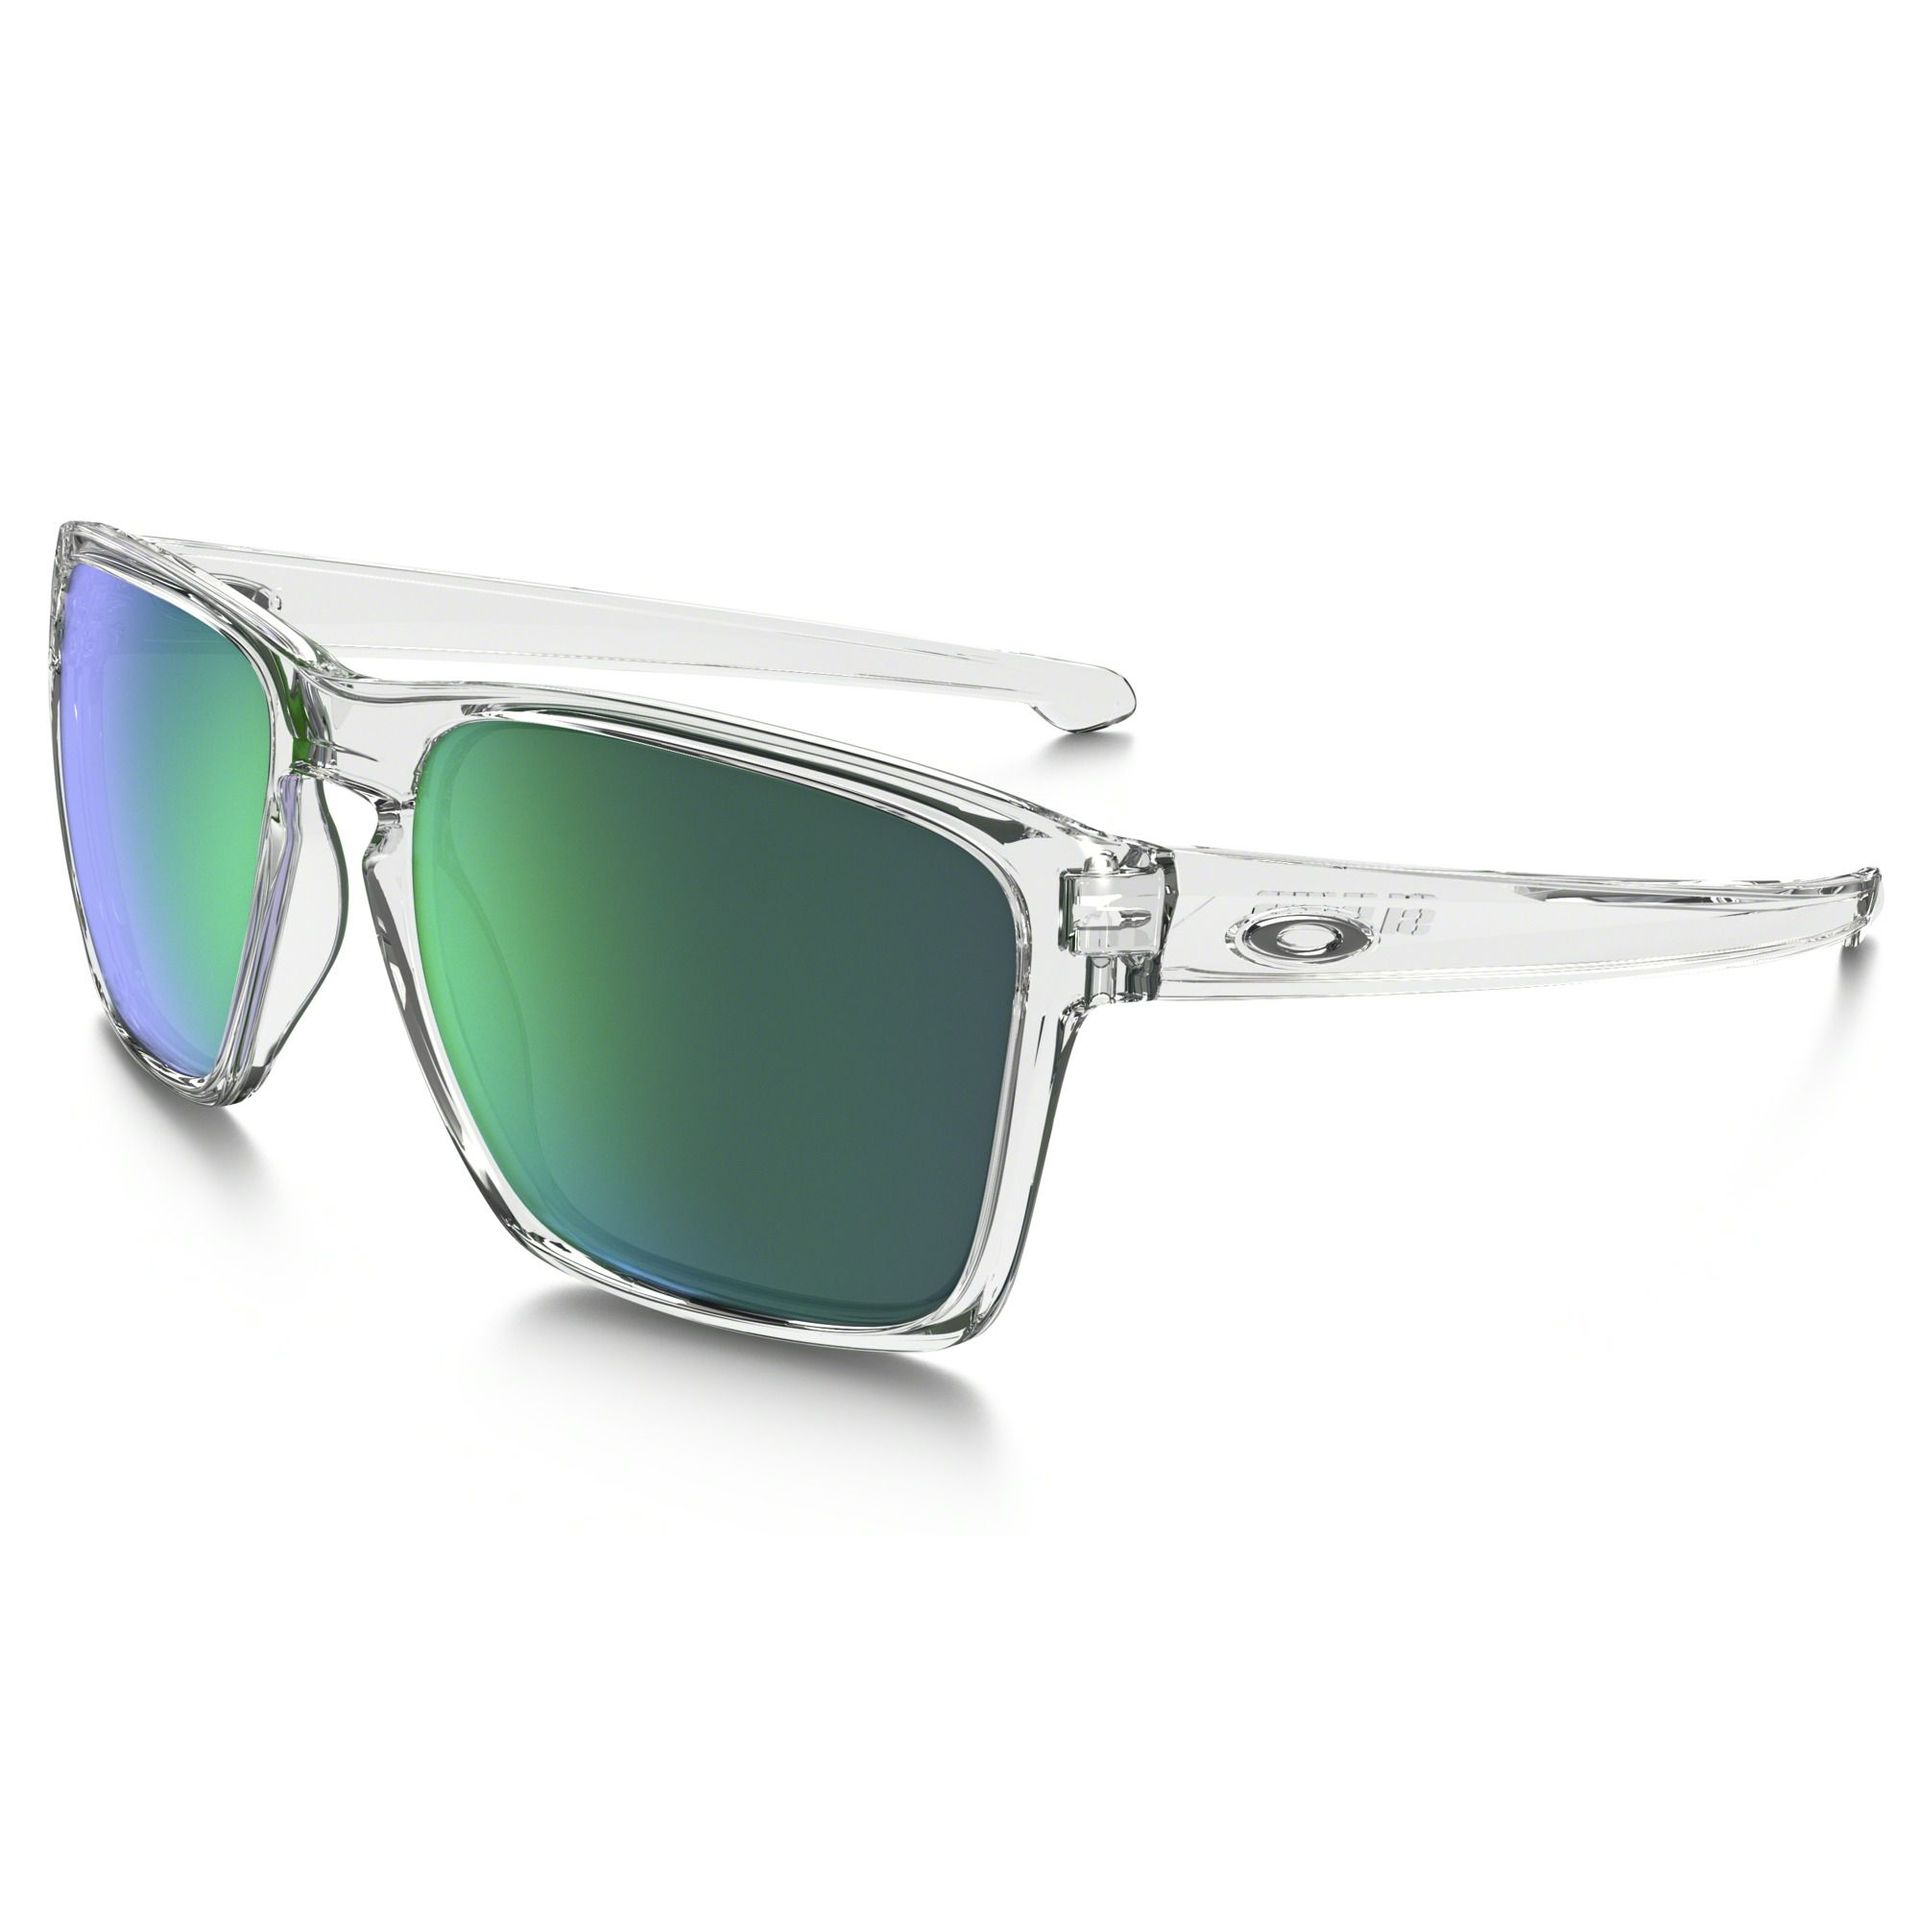 OKULARY OAKLEY SLIVER XL POLISHED CLEAR W JADE IRIDIUM